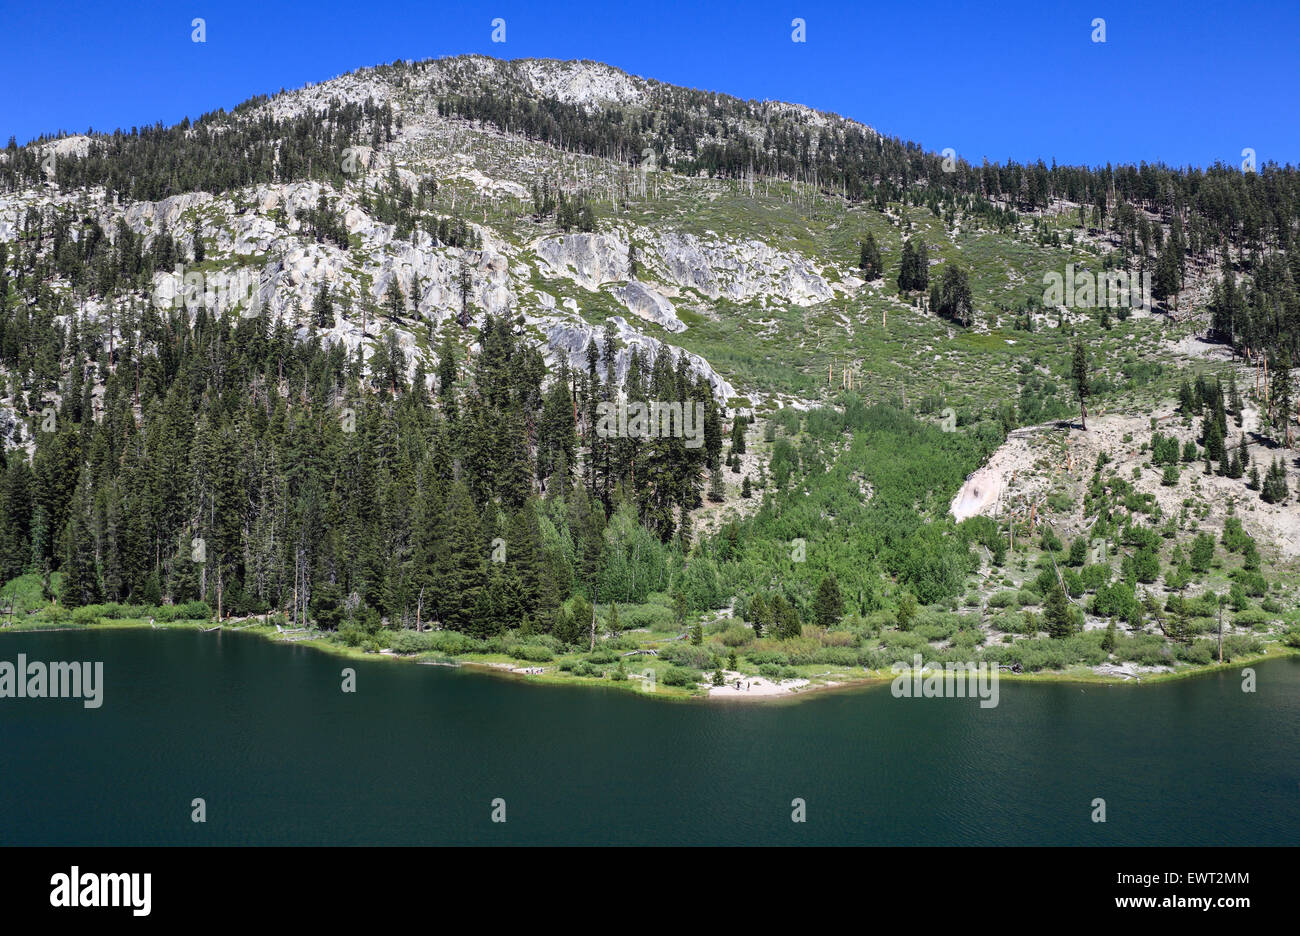 View of Sotcher Lake in Devils Postpile National Monument in Northern California from loop trail - Stock Image